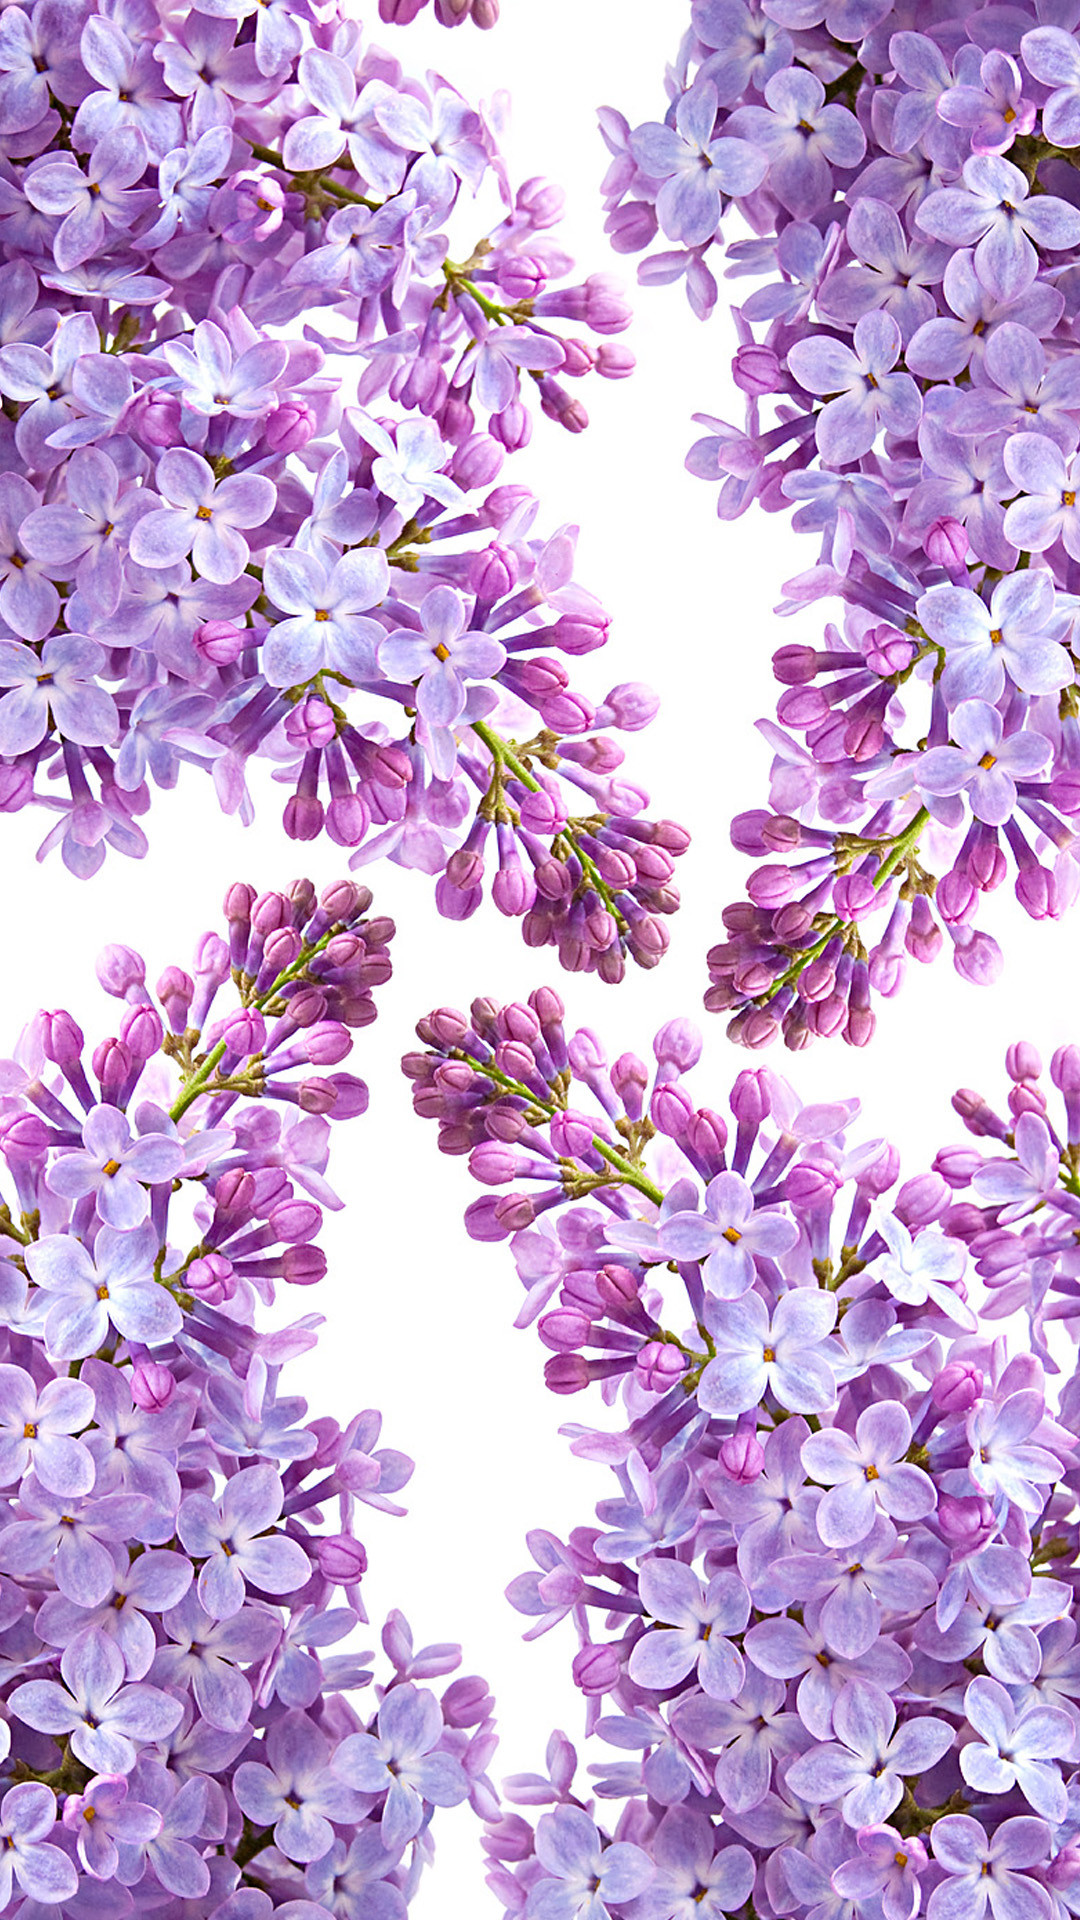 Res: 1080x1920, Lilac | Live HD Lilac Wallpapers, Photos